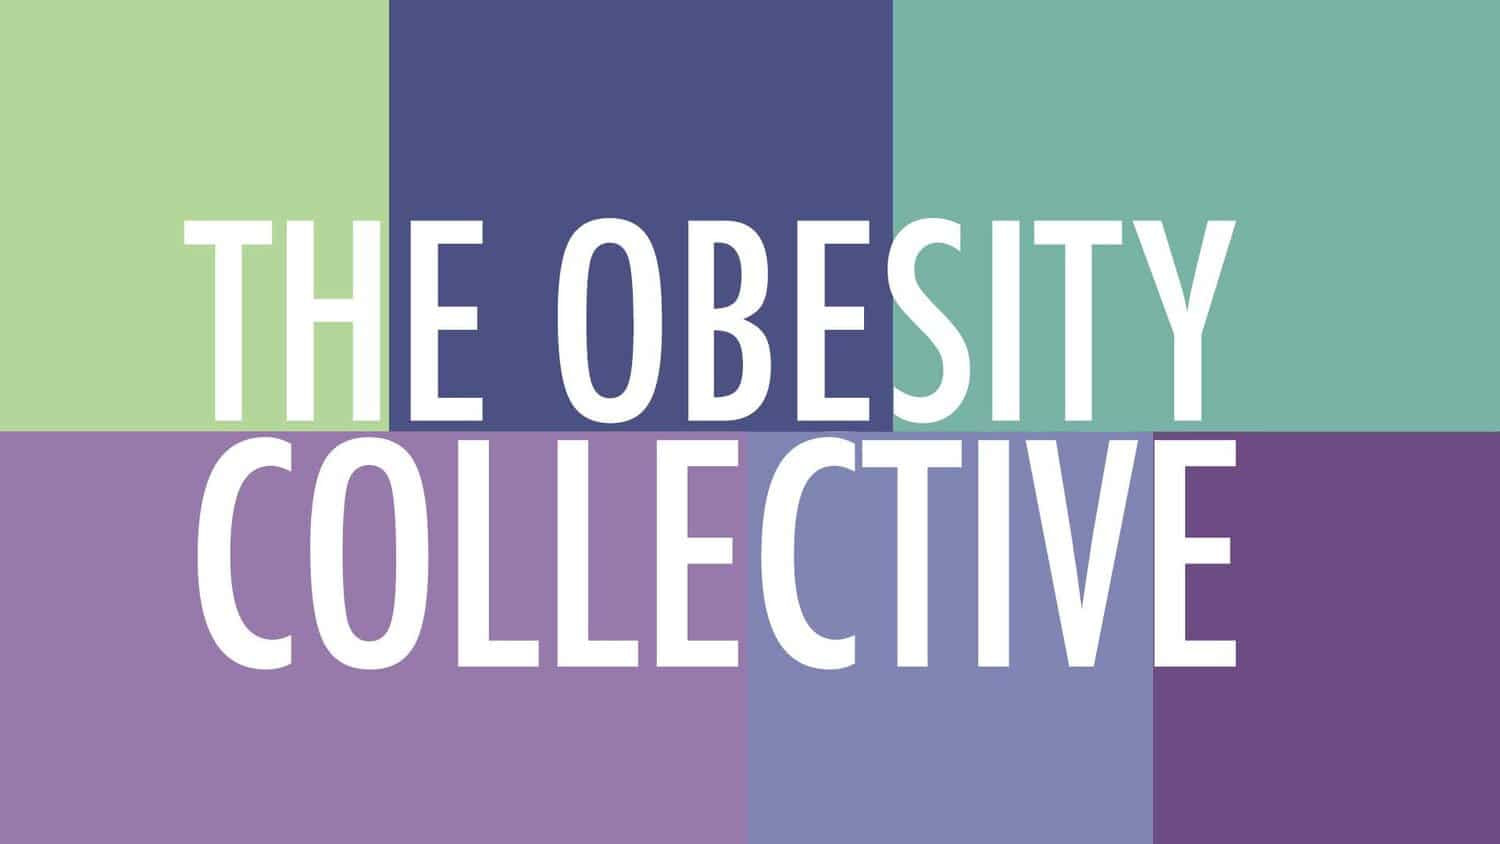 obesity collectibe